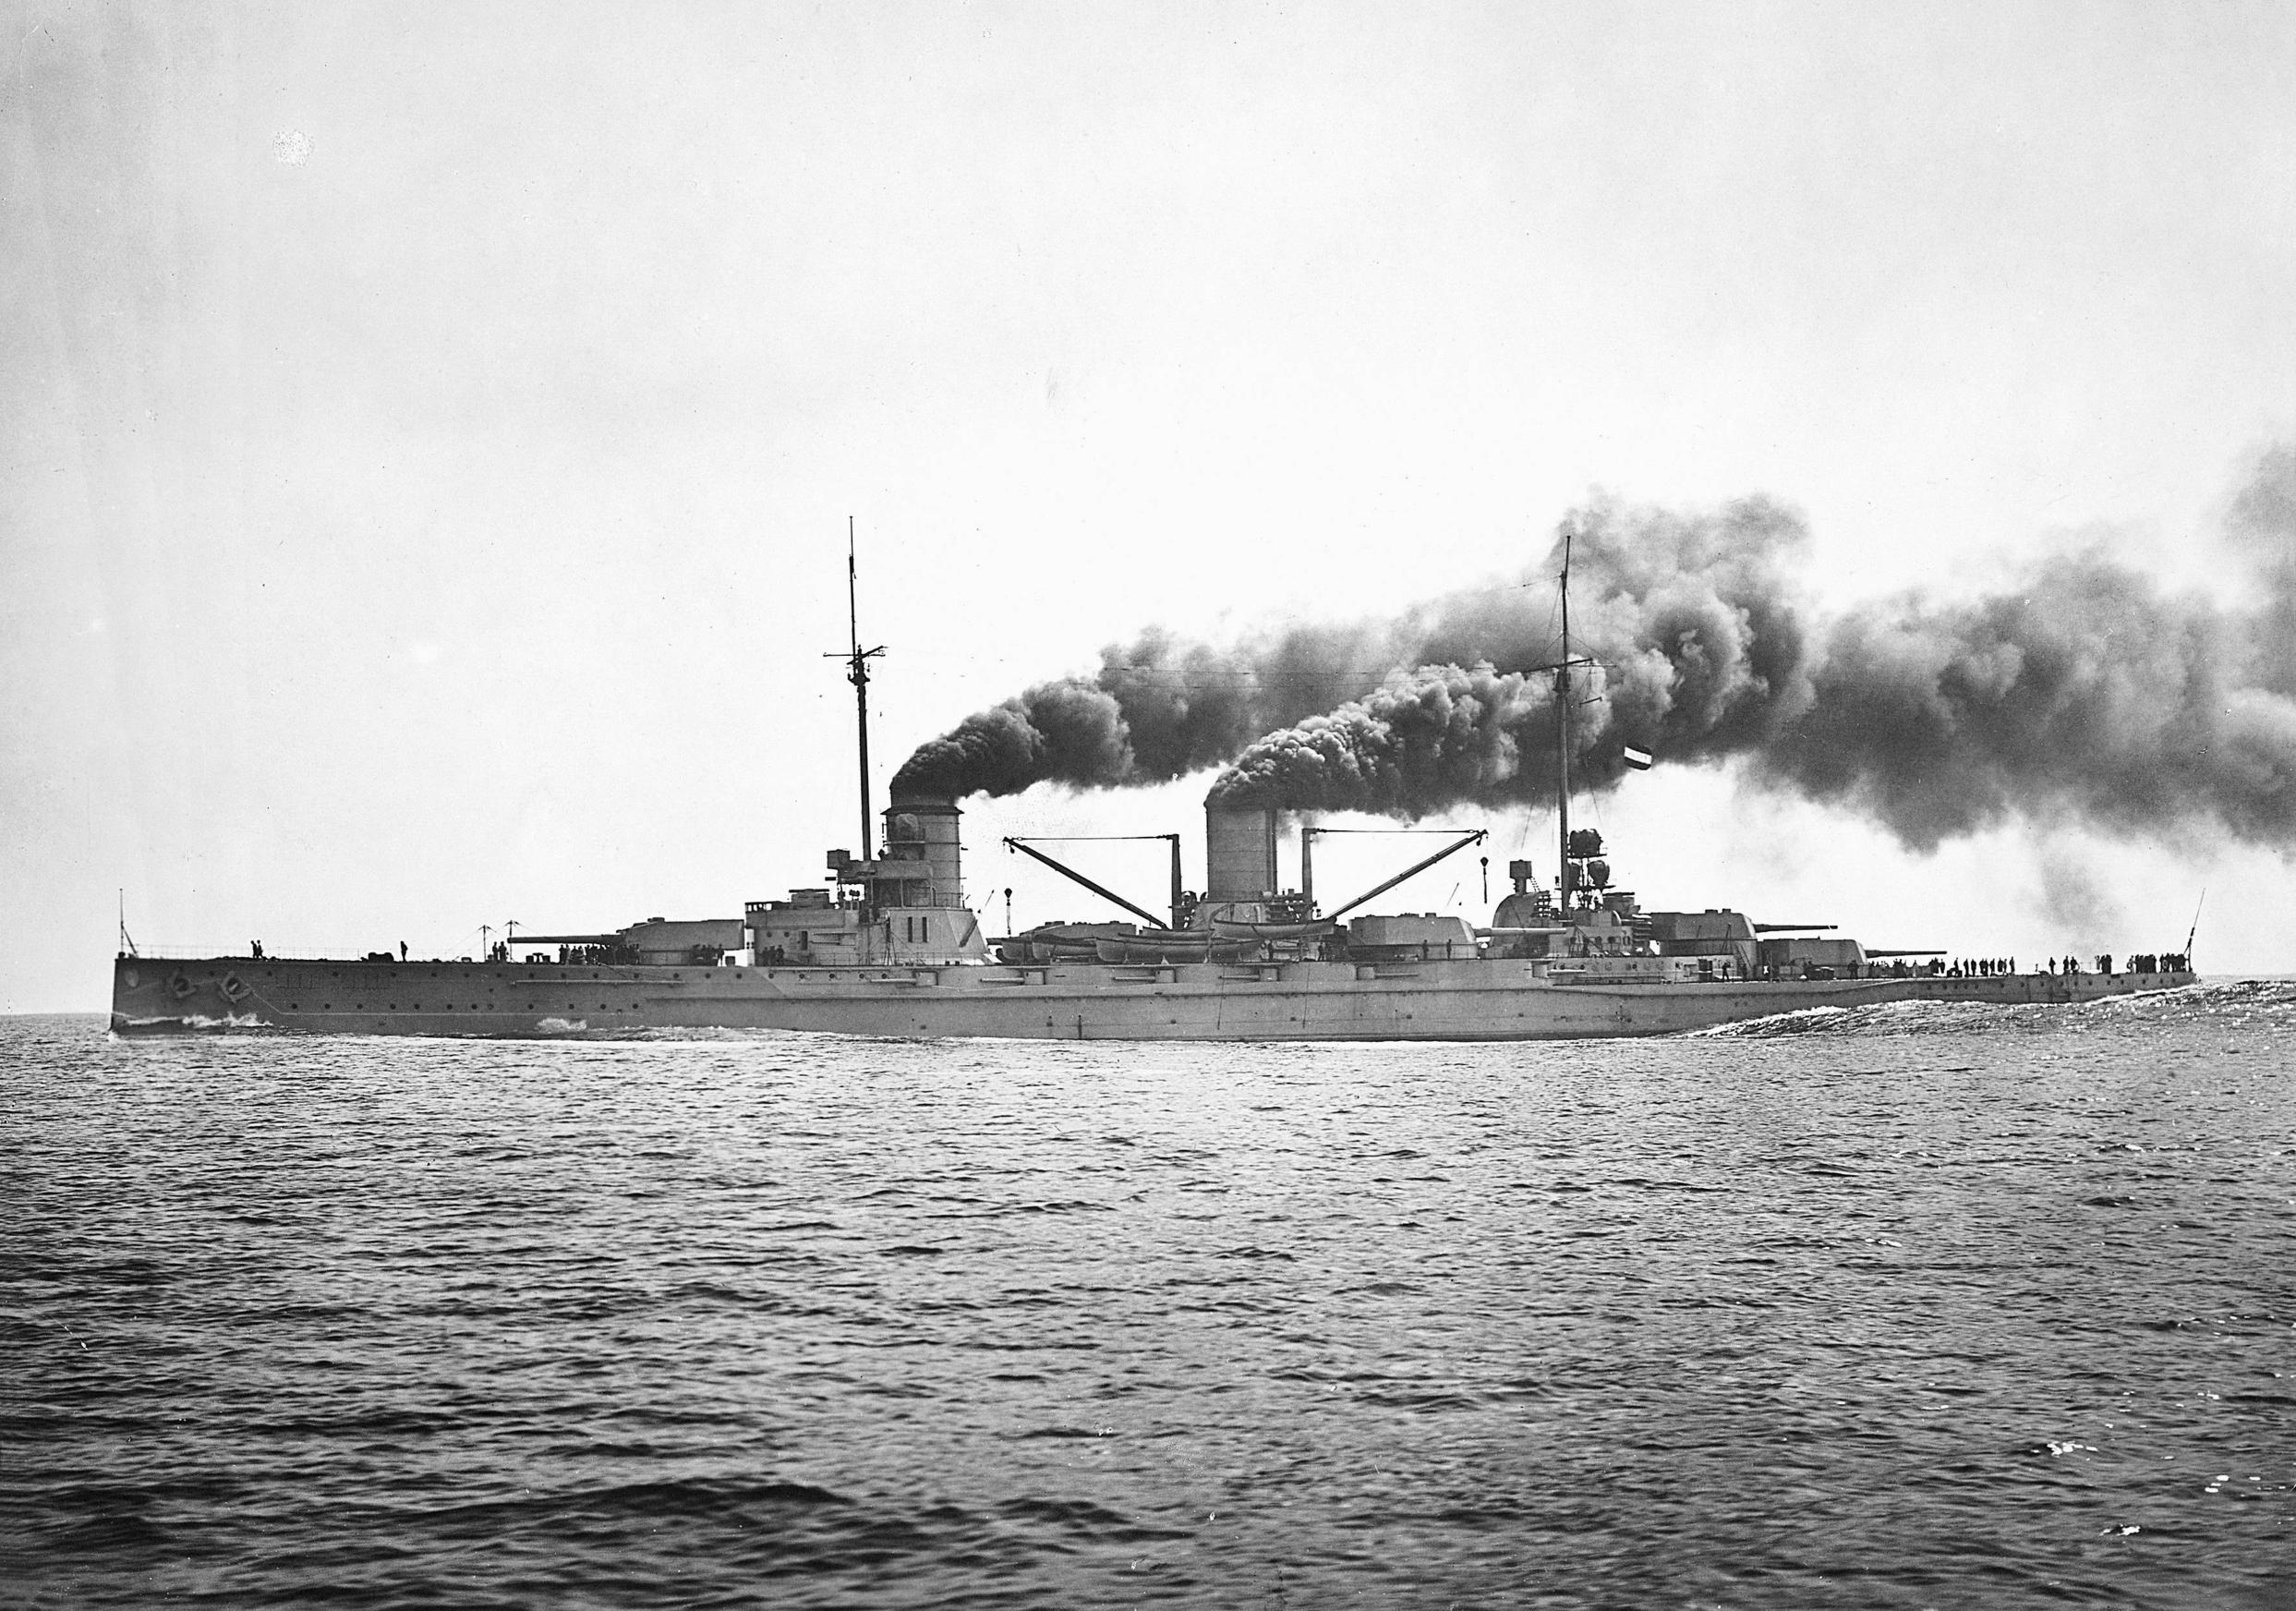 The SMS Goeben, one of two German cruisers that escaped a British dragnet to serve the Ottoman Navy